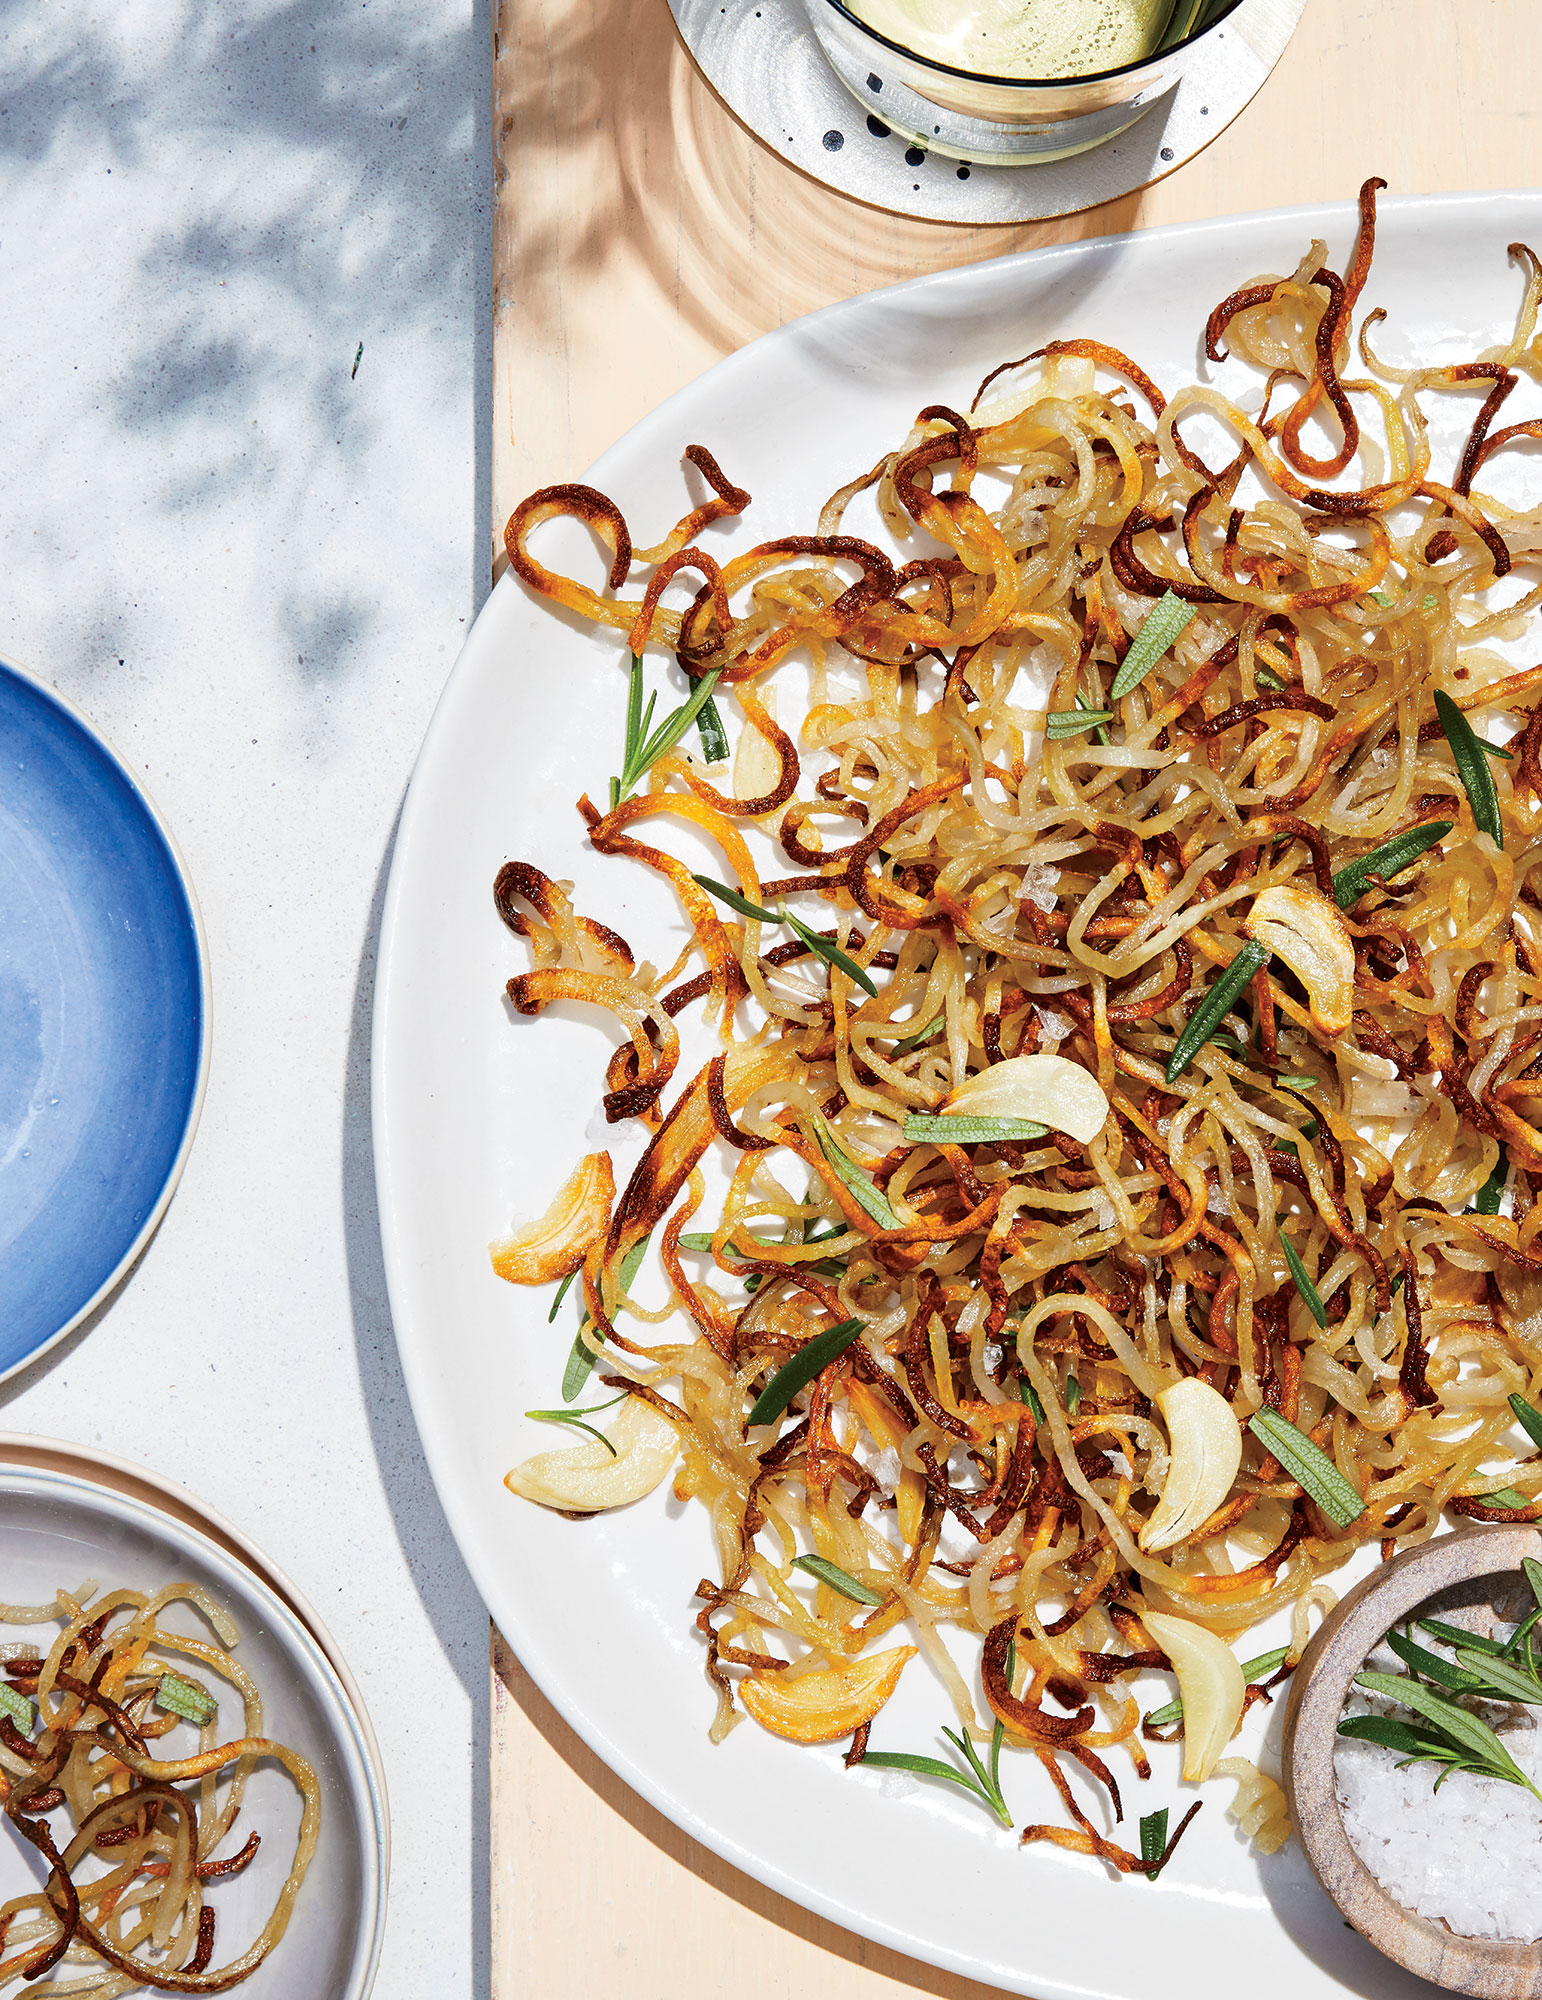 ck- Garlic-Herb Shoestring Fries